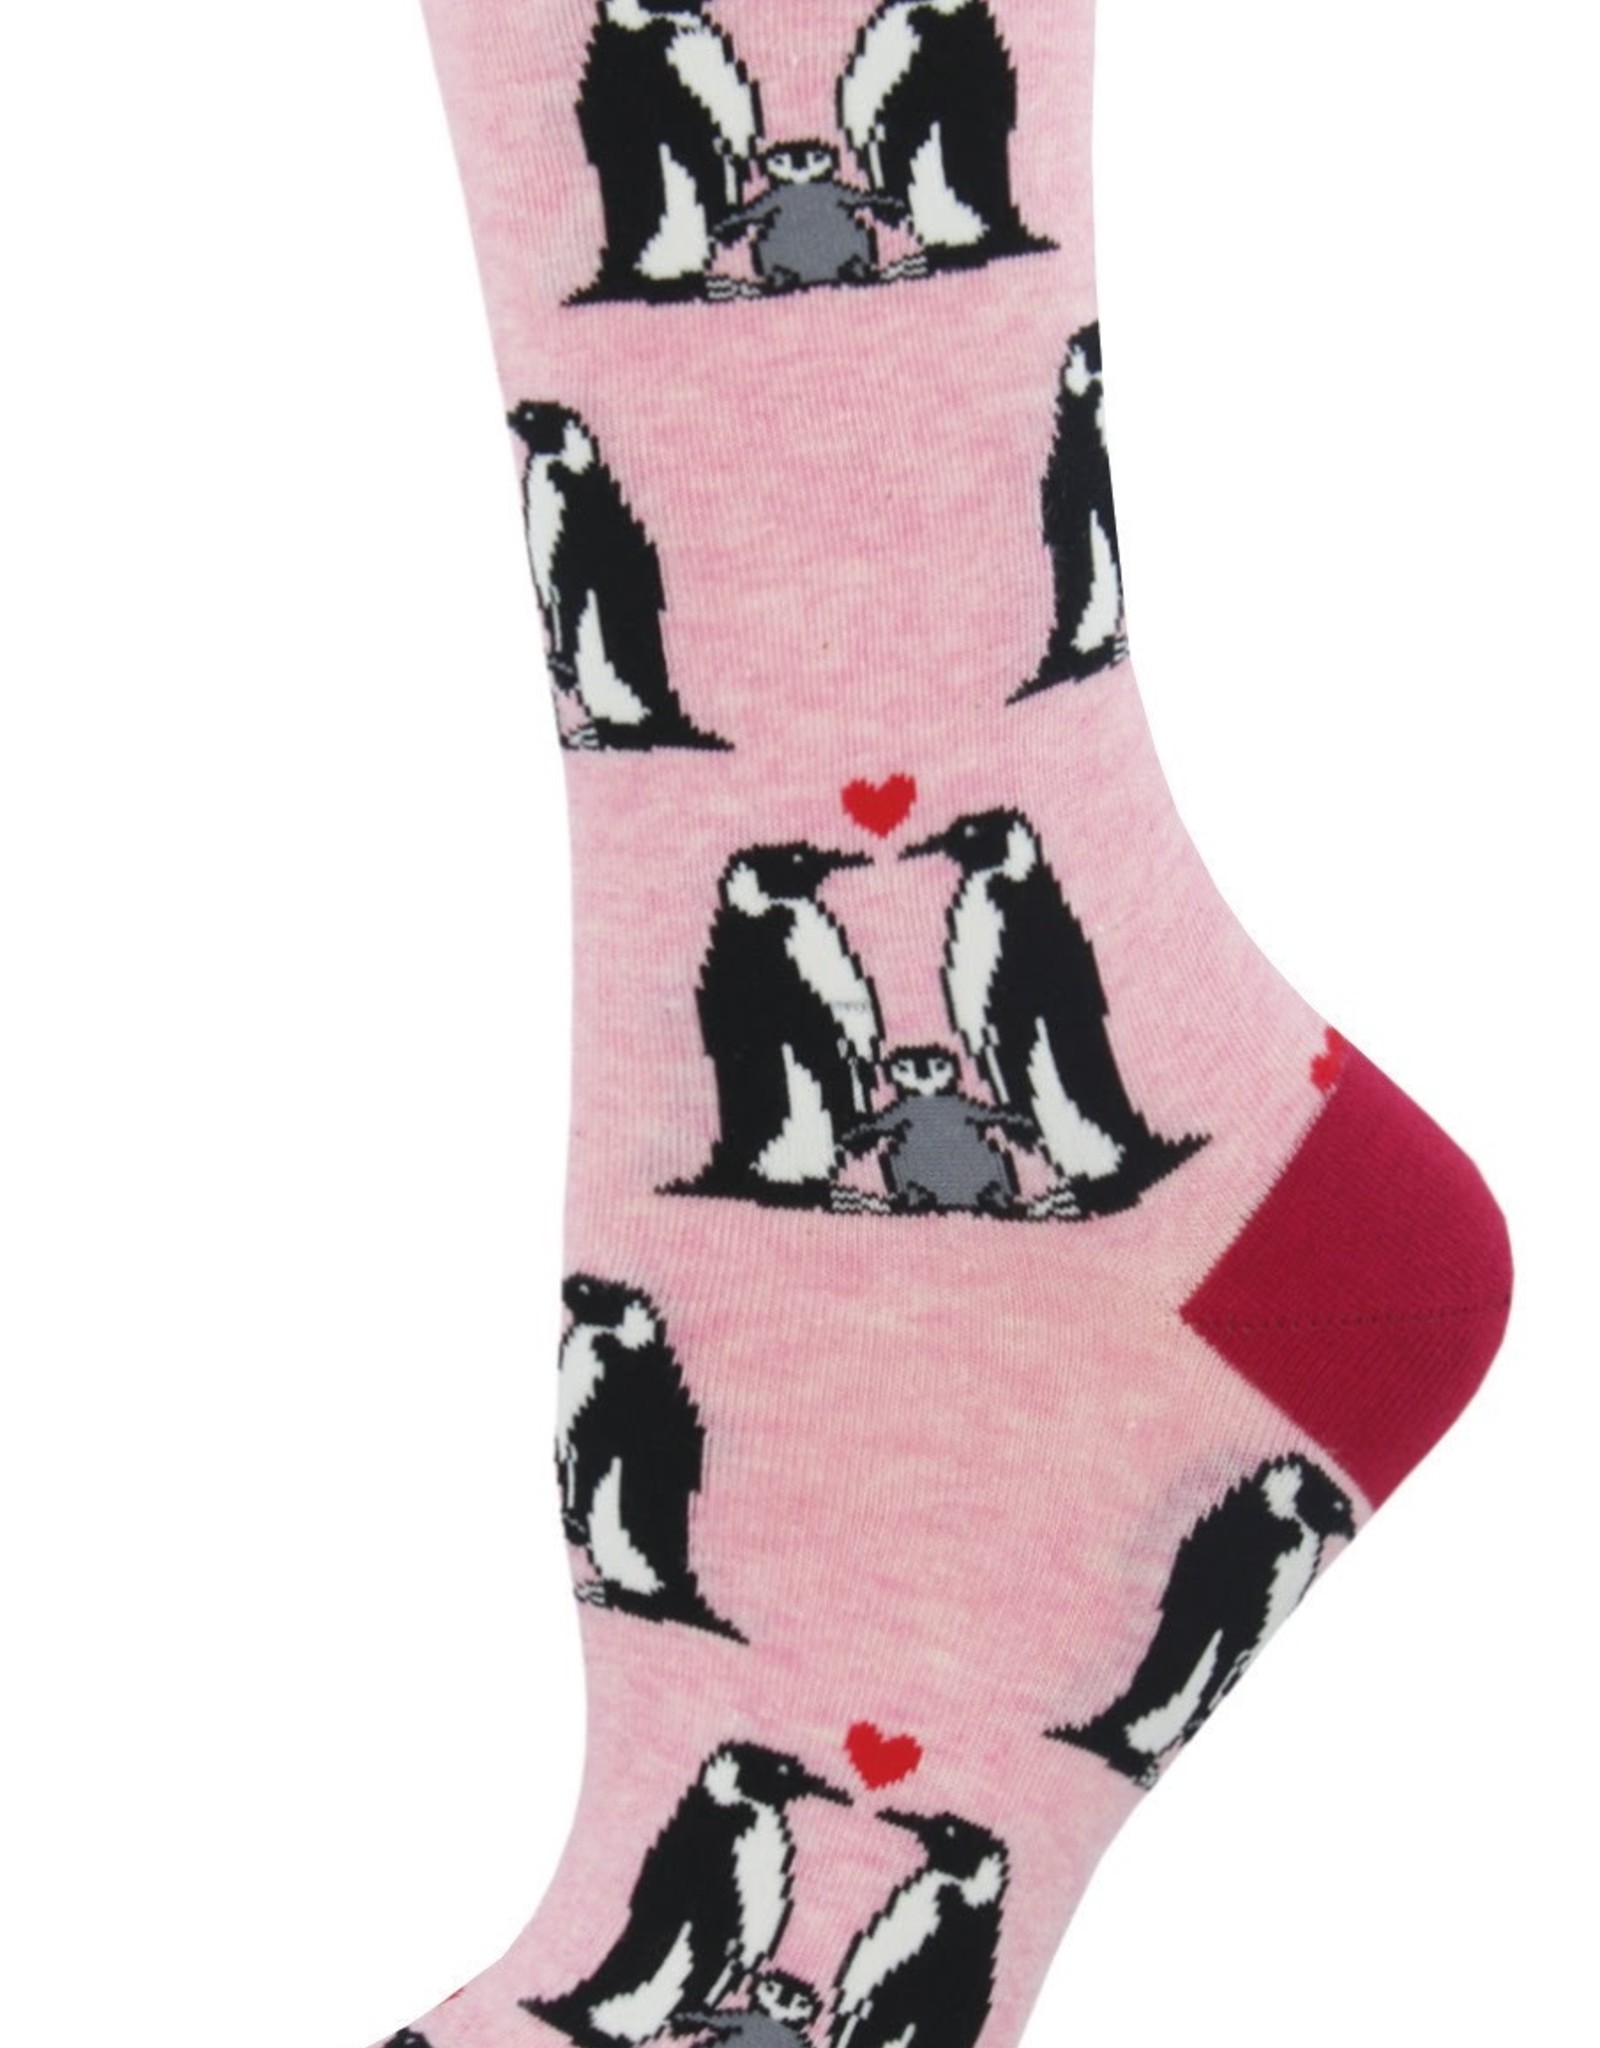 Penguin Love socks